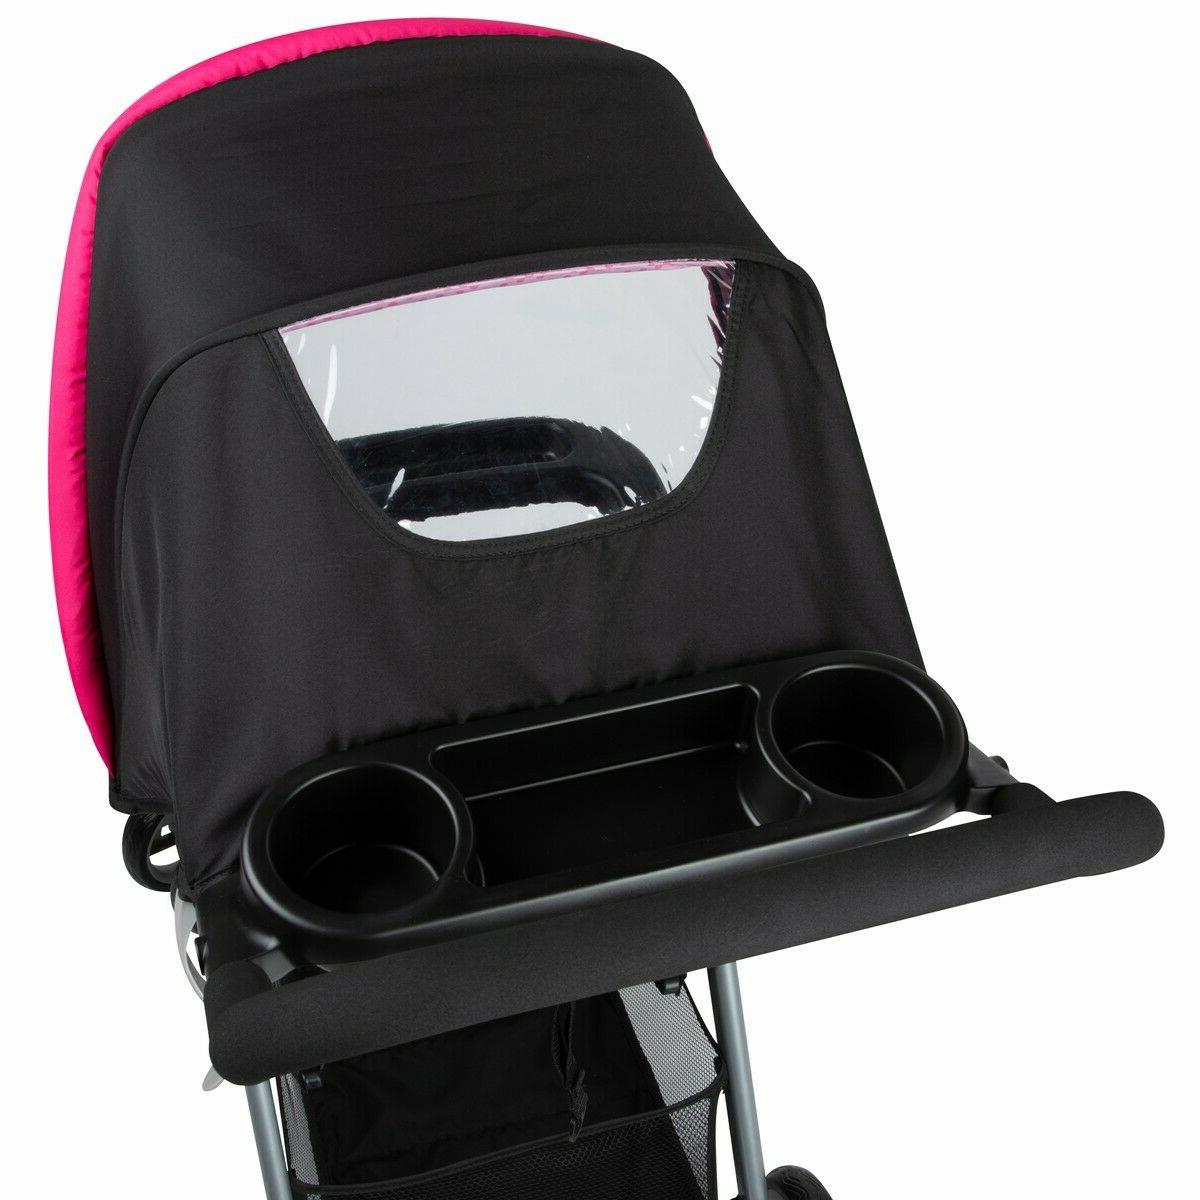 Disney Baby Stroller with Car Seat Infant Bouncer